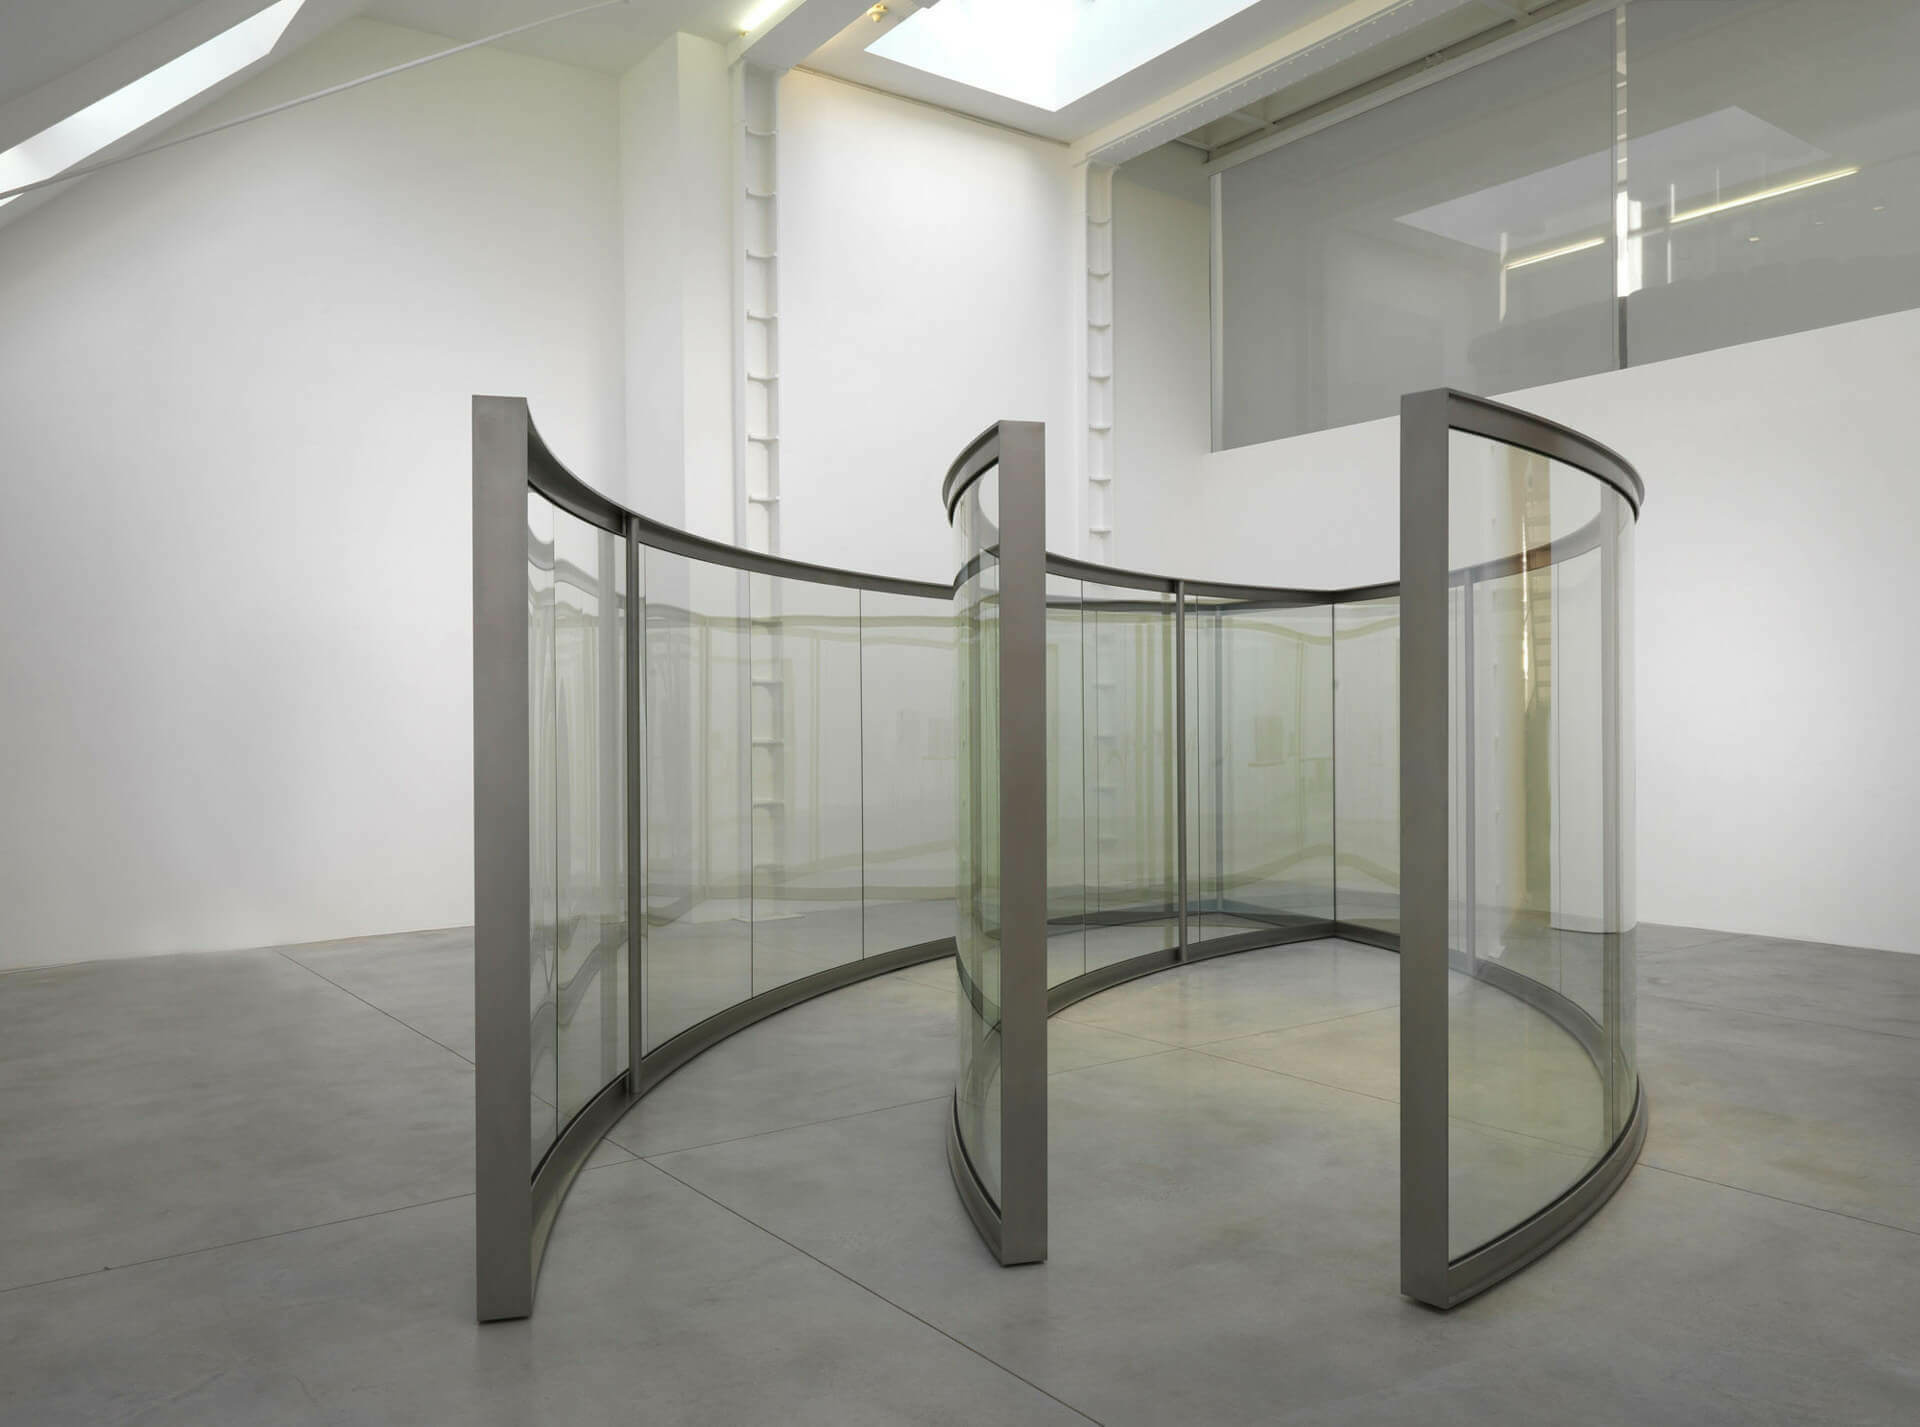 two 2 way mirror ellipses one open one closed dan graham artists lisson gallery. Black Bedroom Furniture Sets. Home Design Ideas